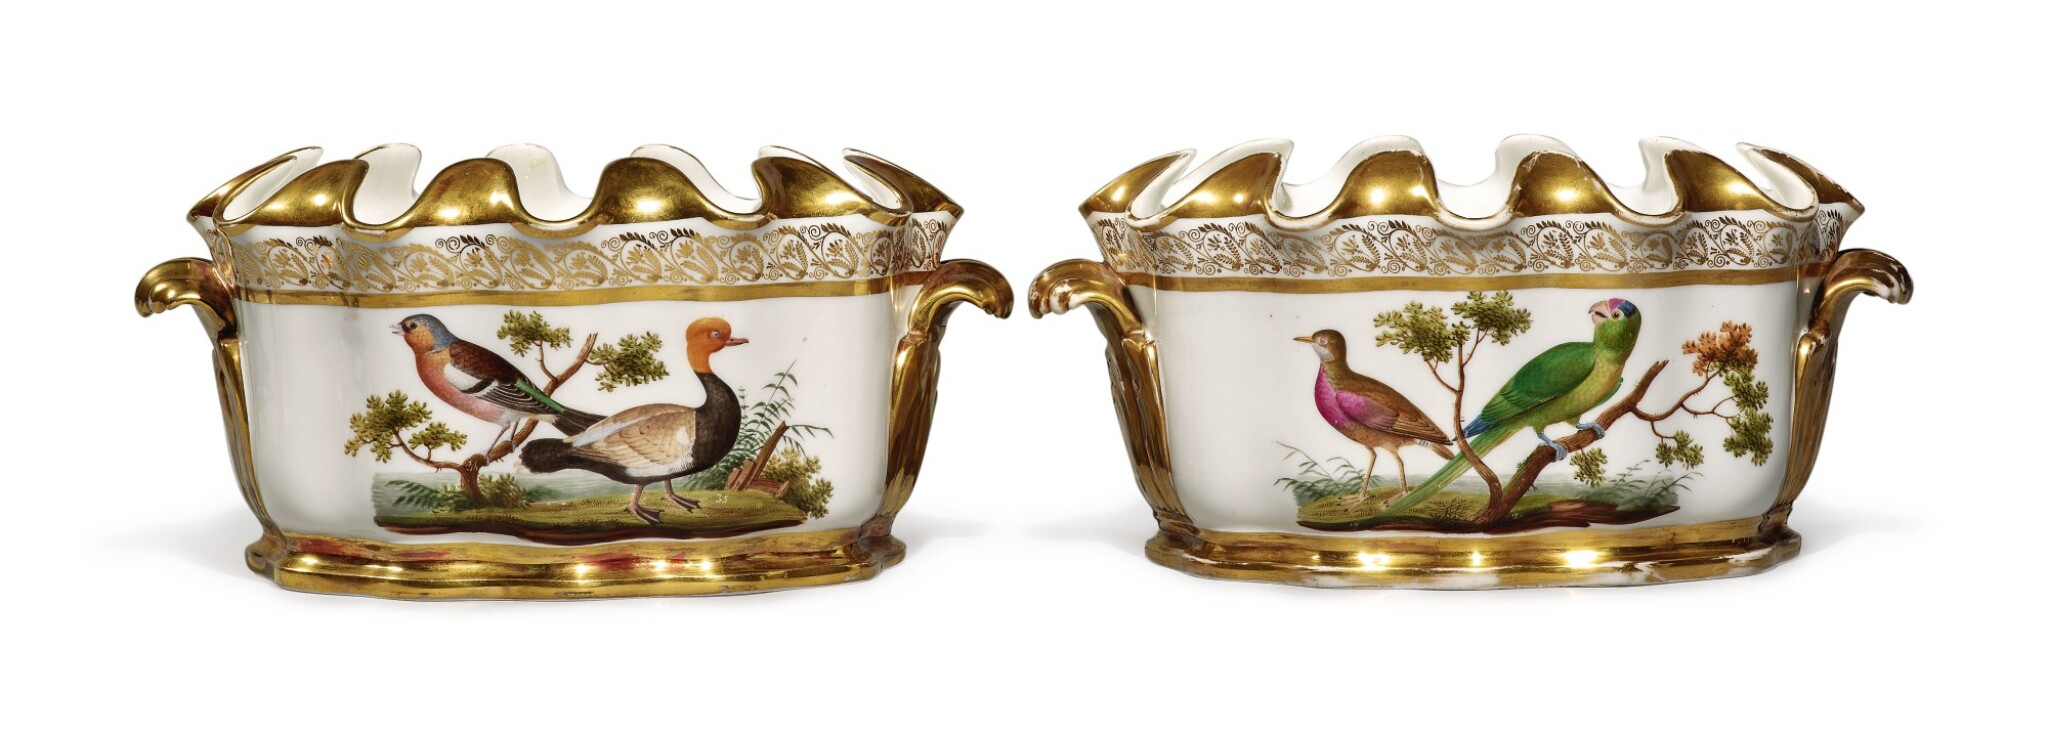 View full screen - View 1 of Lot 271. A PAIR OF PARIS PORCELAIN NAPLES-DECORATED ORNITHOLOGICAL-SUBJECT MONTEITHS, CIRCA 1820.